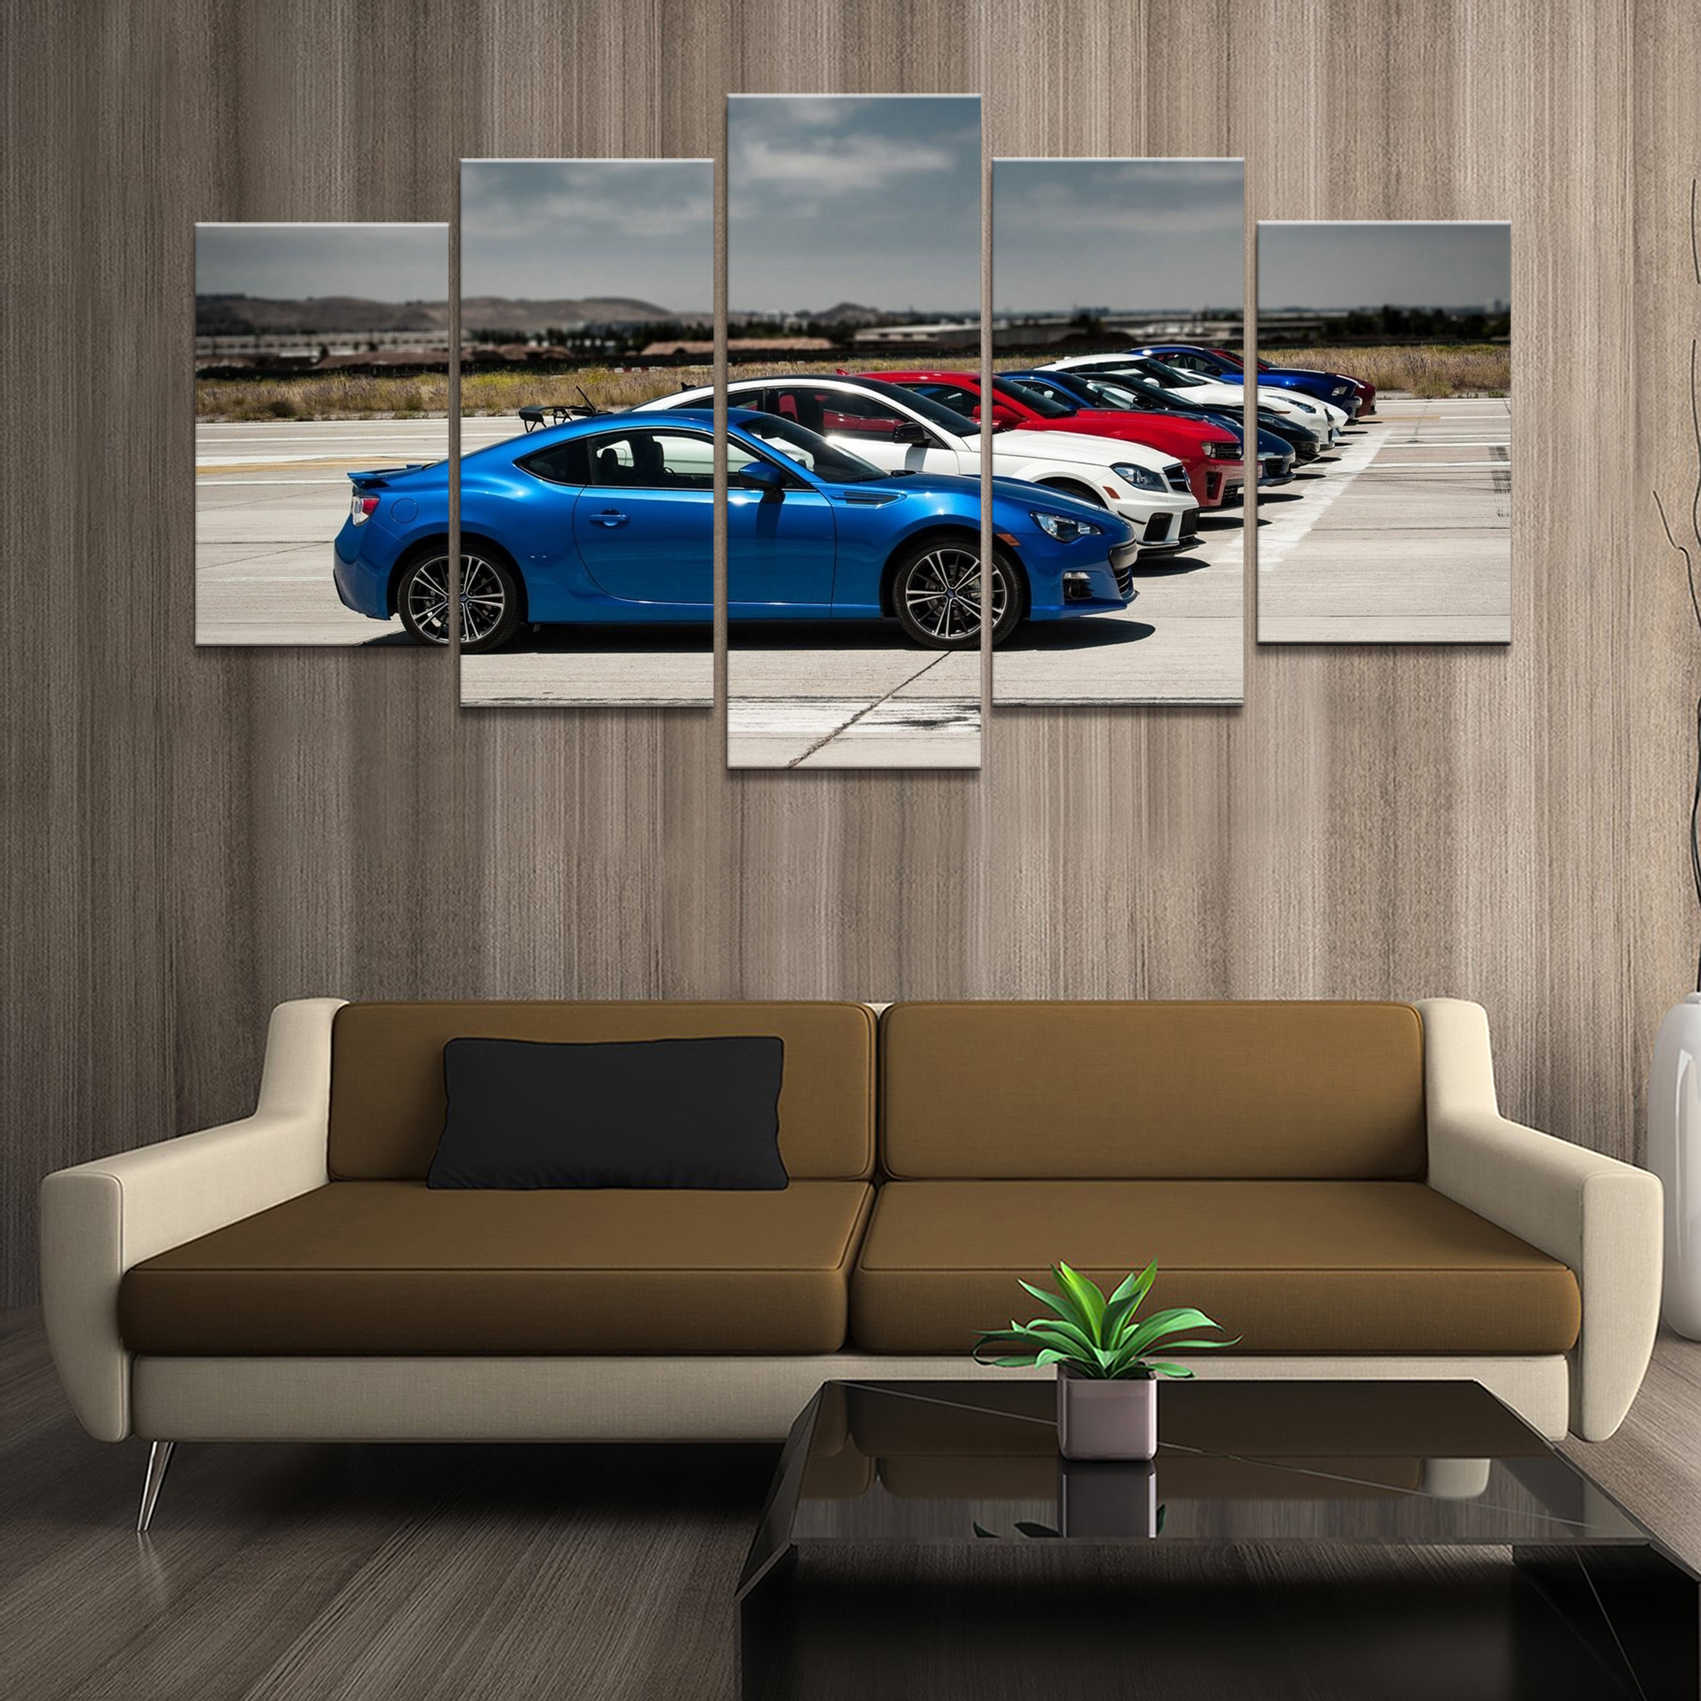 Home Decor Poster HD Pictures Prints Canvas 5 Piece Modular Car Starting Line Scenery Living Room Art Decorative Painting Framed